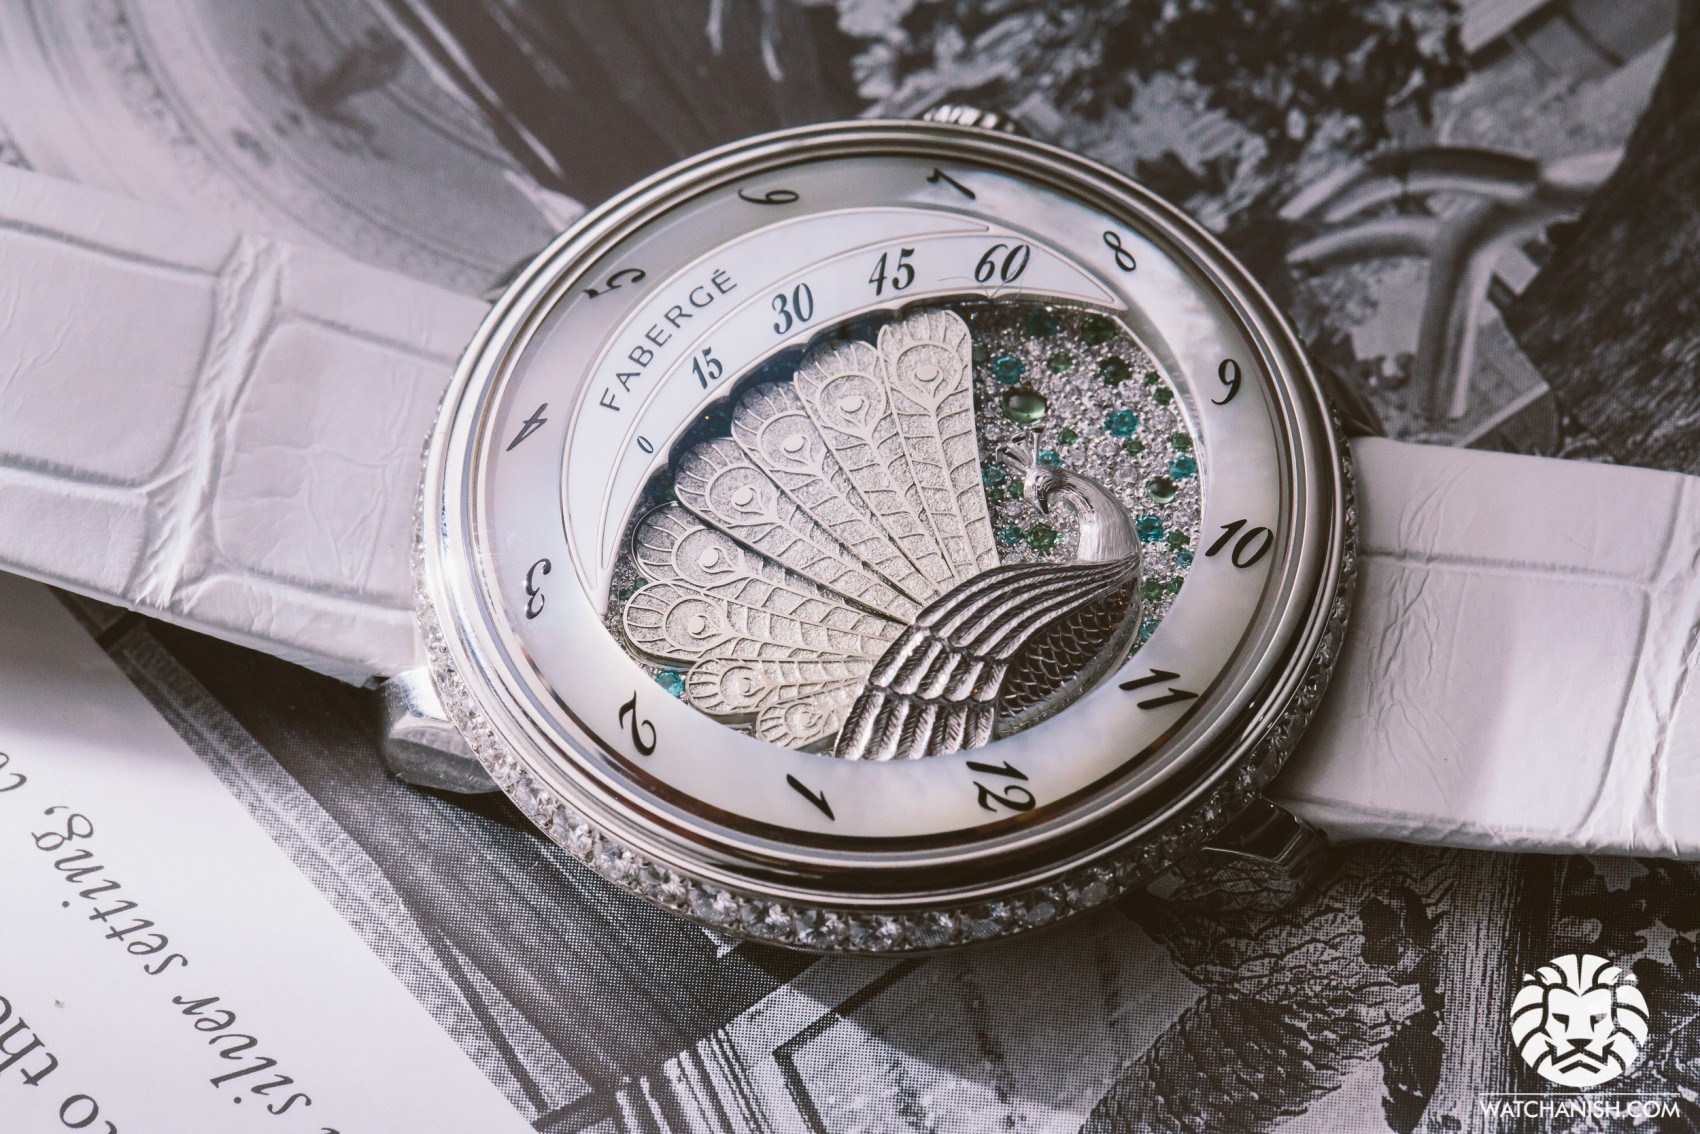 BaselWorld 2015 Best Quality Ladies' Faberge watch Replica